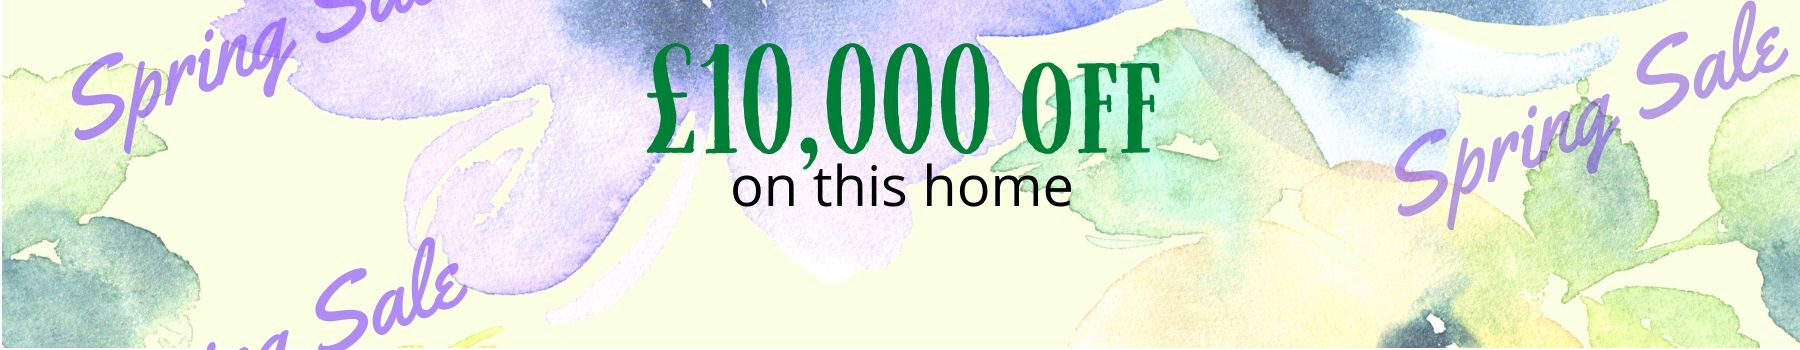 10000 off listed price of this home banner spring sale